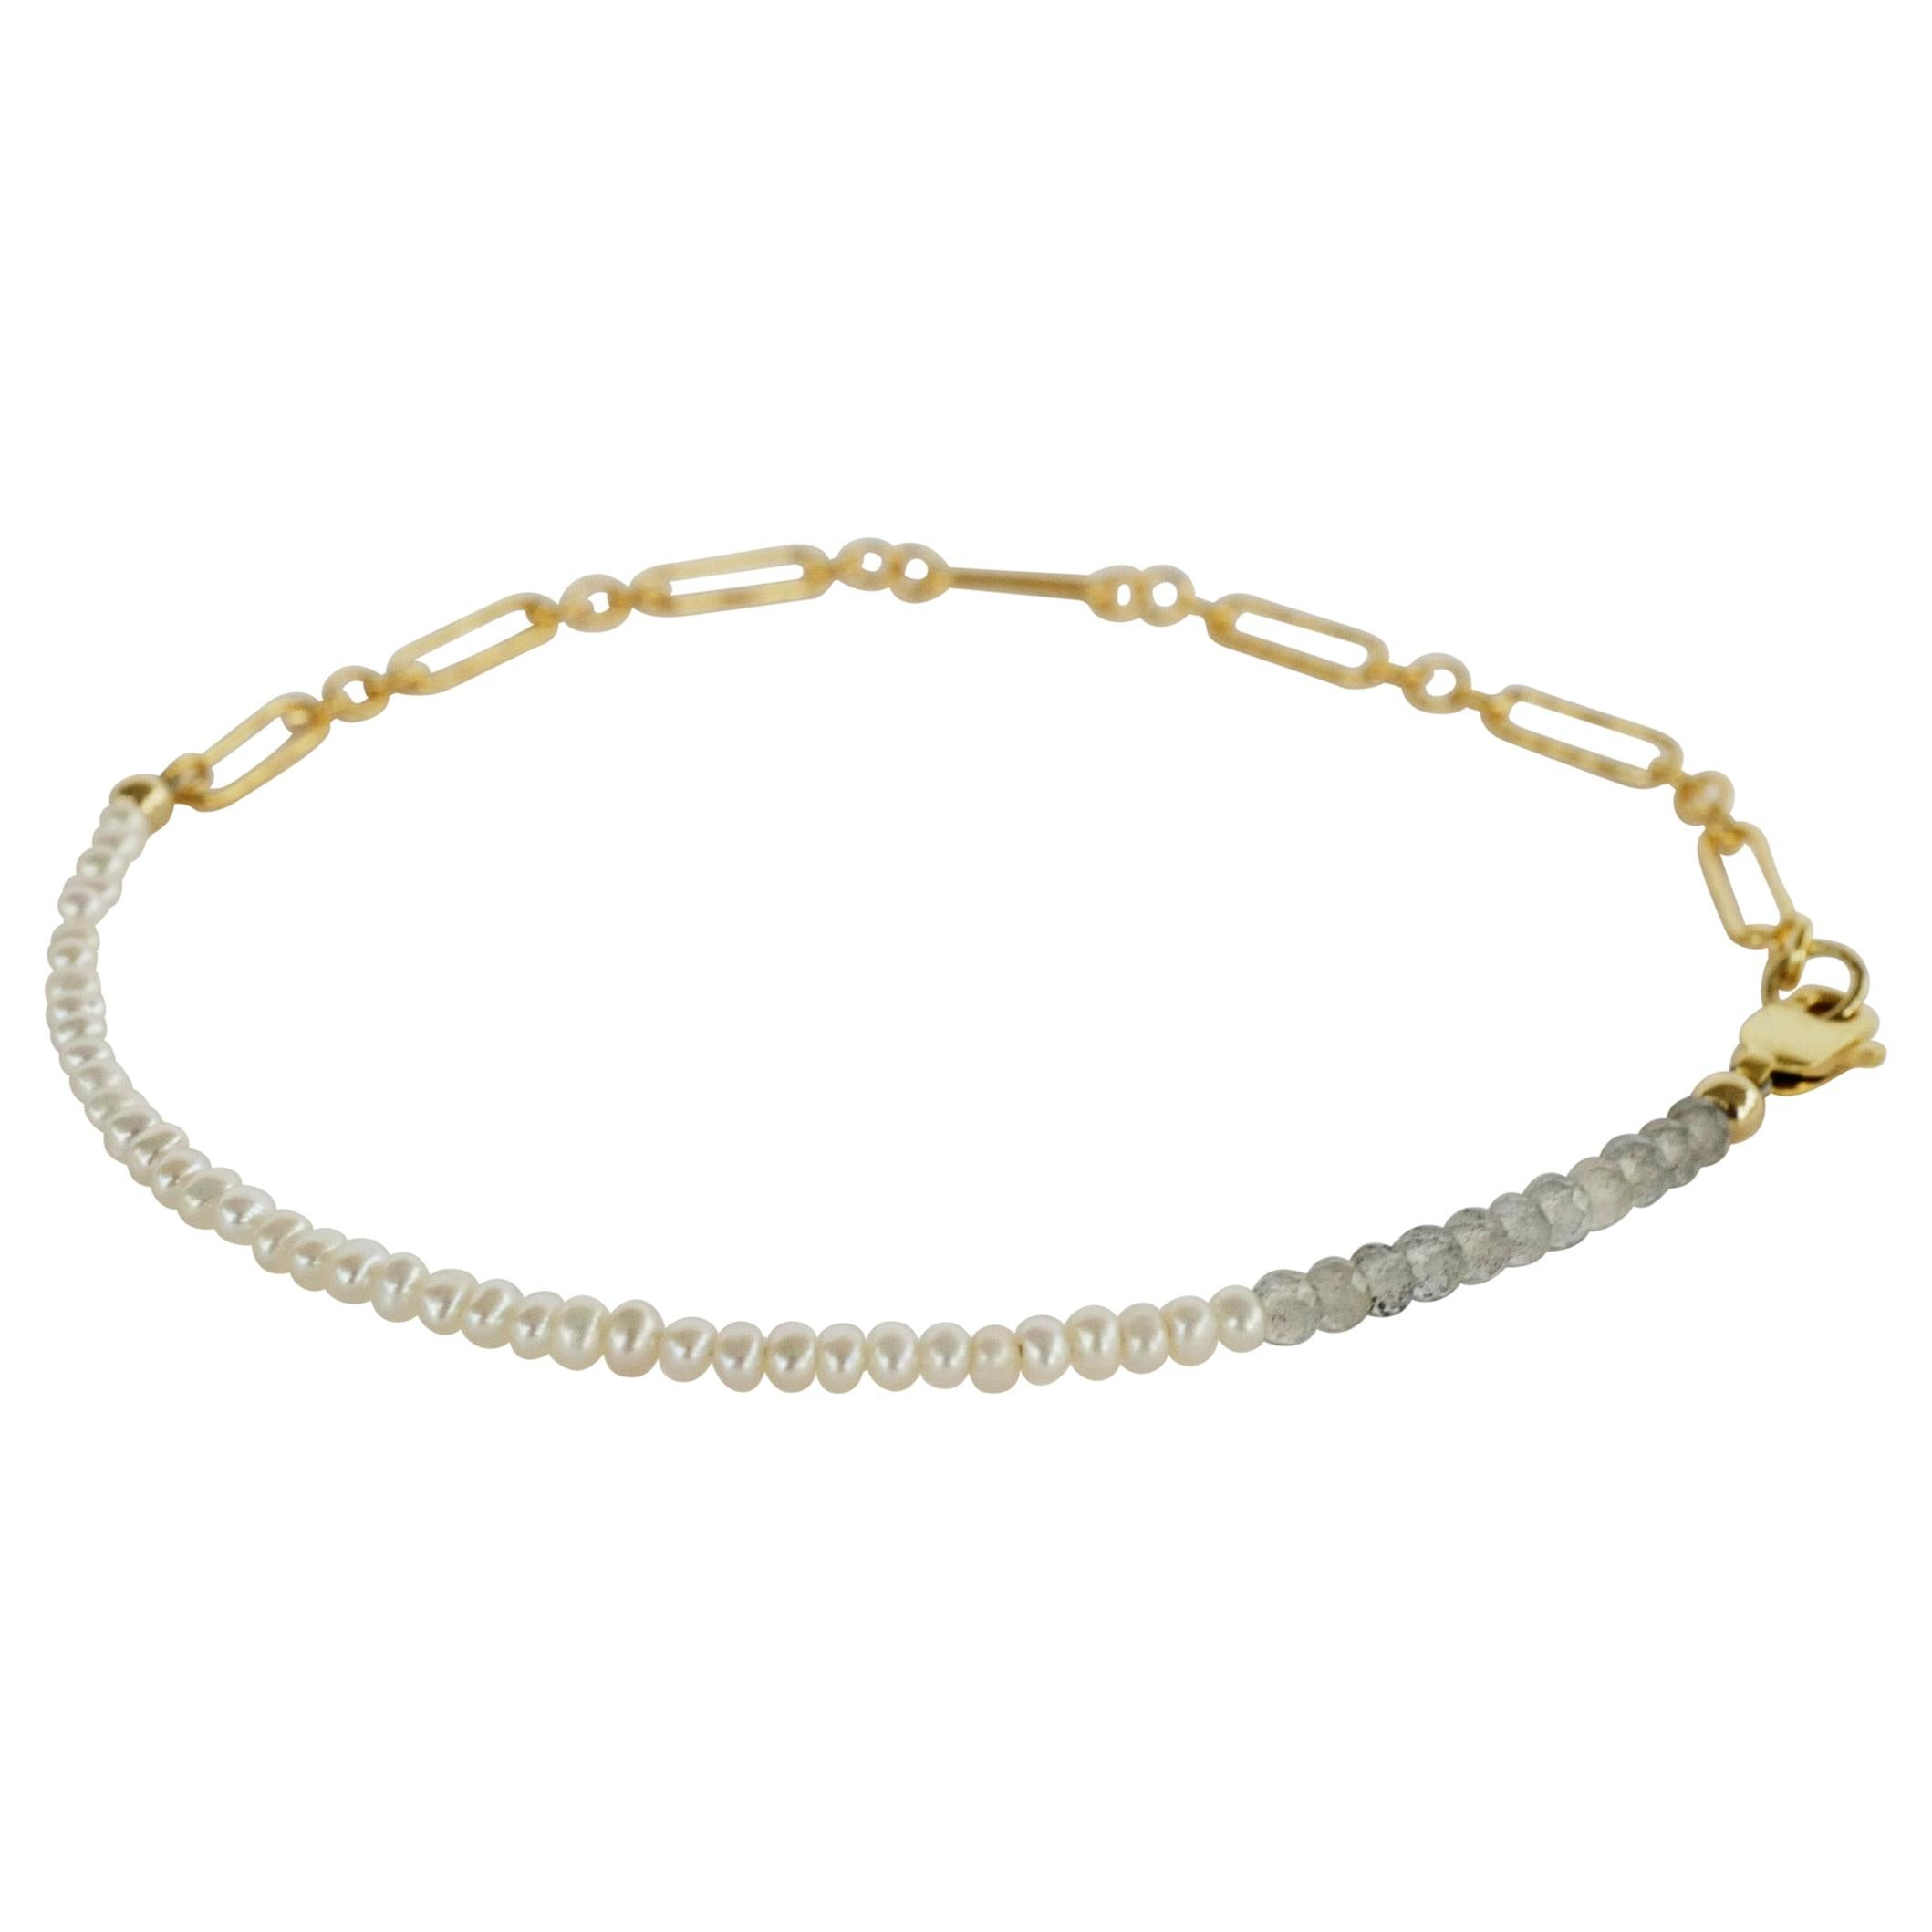 White Pearl Labradorite Ankle Bracelet Beaded Gold Filled Chain J Dauphin